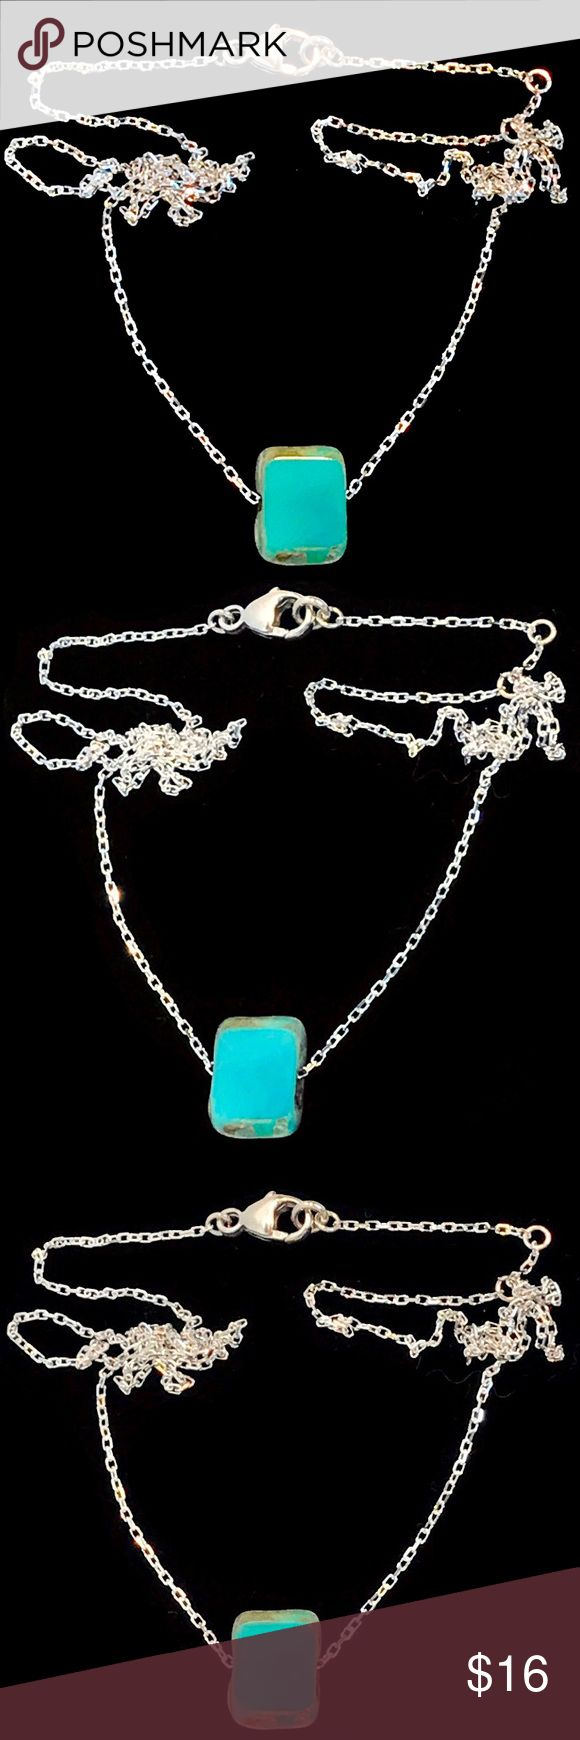 Authentic Turquoise Adjustable Chain Necklace Gorgeous! This beautiful, authentic turquoise necklace is made with certified sterling silver .925. This necklace can be worn at three lengths 14 inch, 15 inch, and 16 inches. This chain is bright and light-catching and the turquoise center pendant slides along the chain. Perfect for layering with other chains.necklace comes mint condition, brand-new in the package. K Accessories Jewelry Necklaces